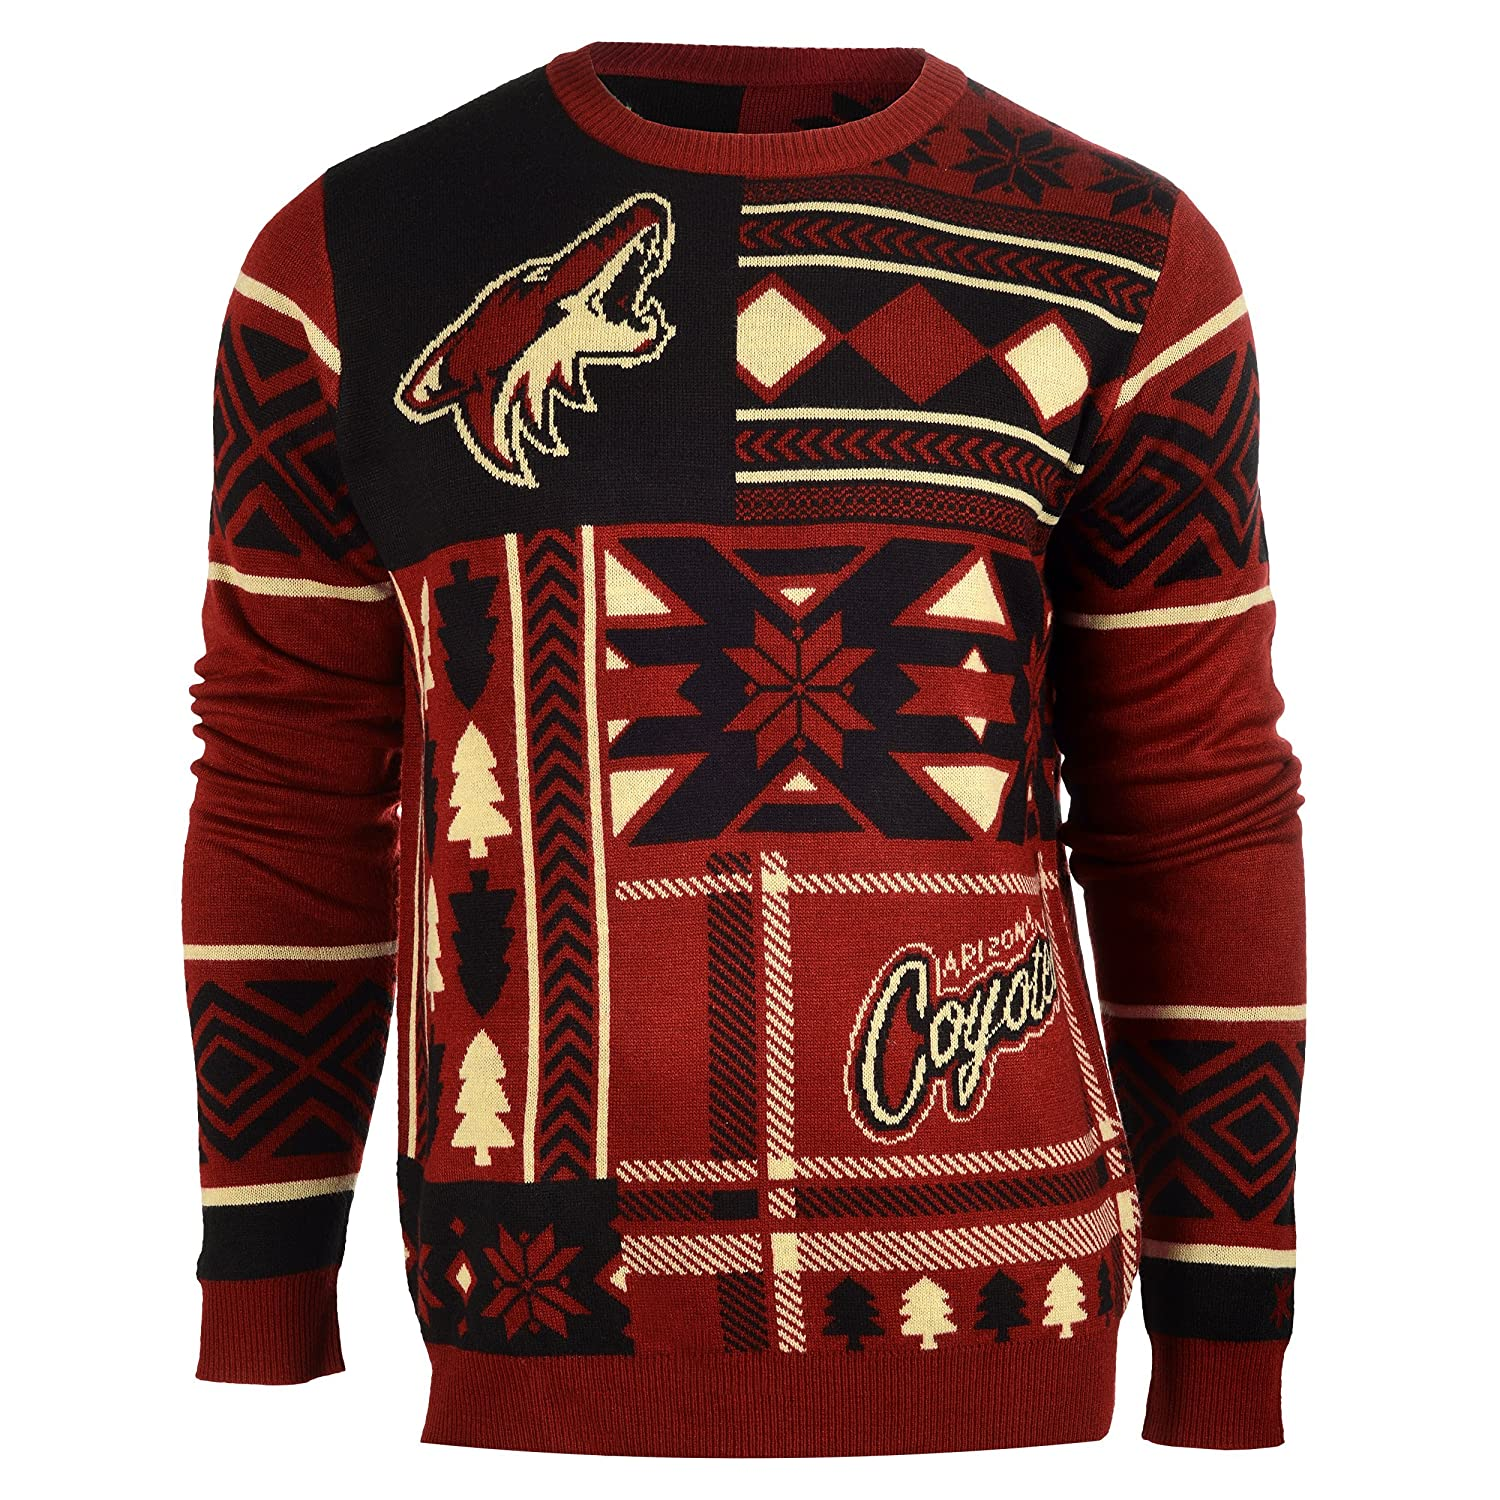 Amazon.com : FOCO NHL Patches Ugly Sweater - Pick Team : Sports ...